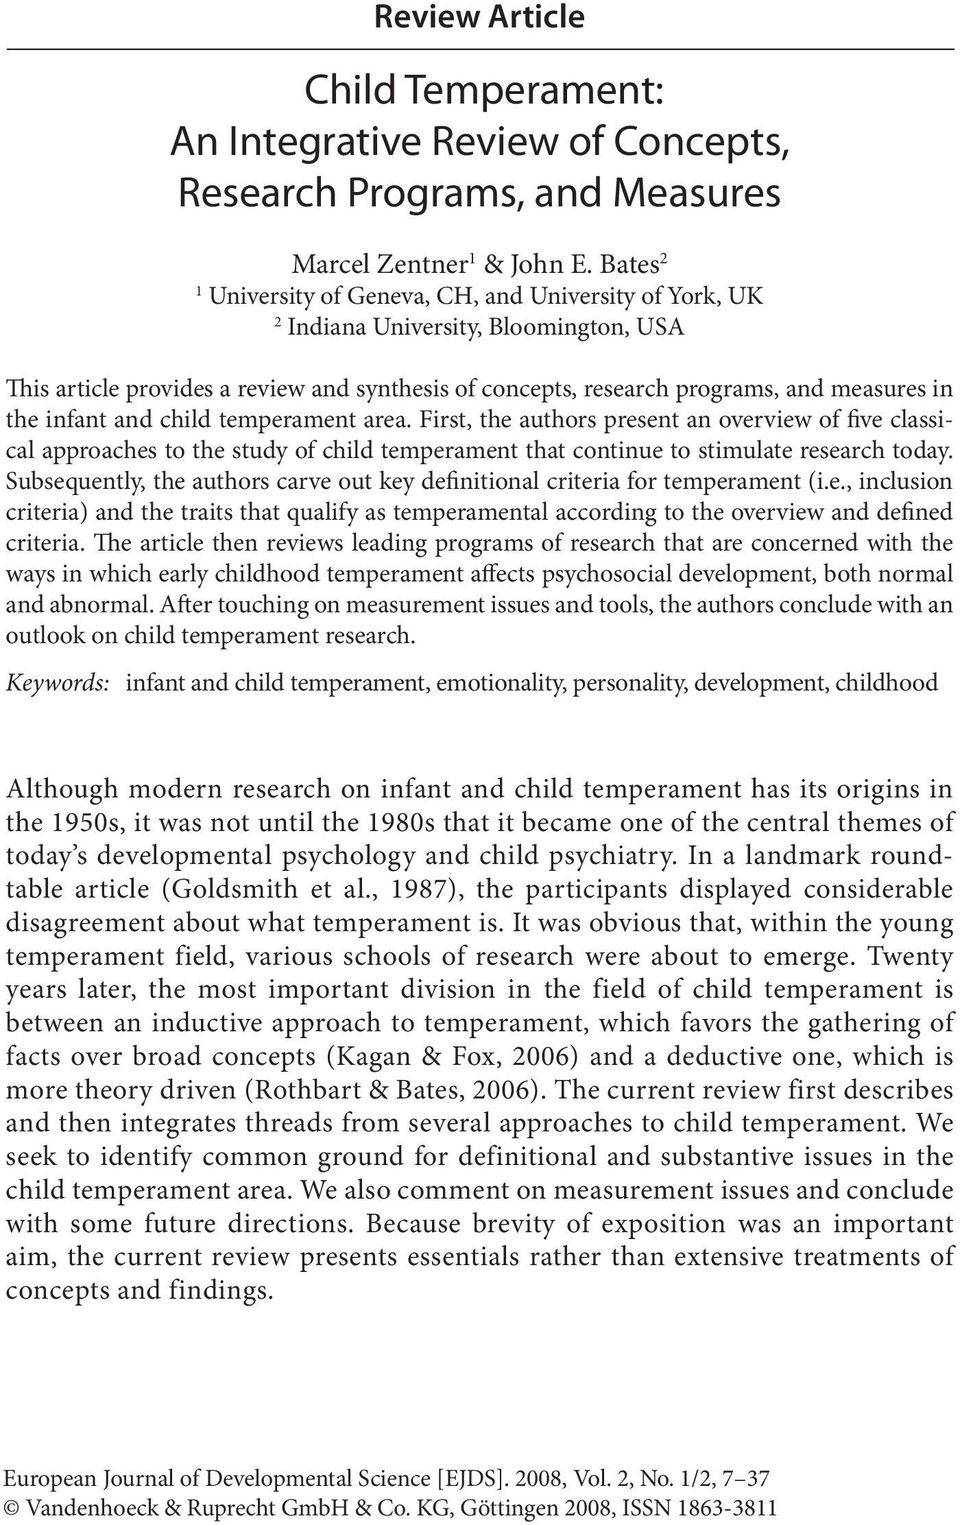 infant and child temperament area. First, the authors present an overview of five classical approaches to the study of child temperament that continue to stimulate research today.